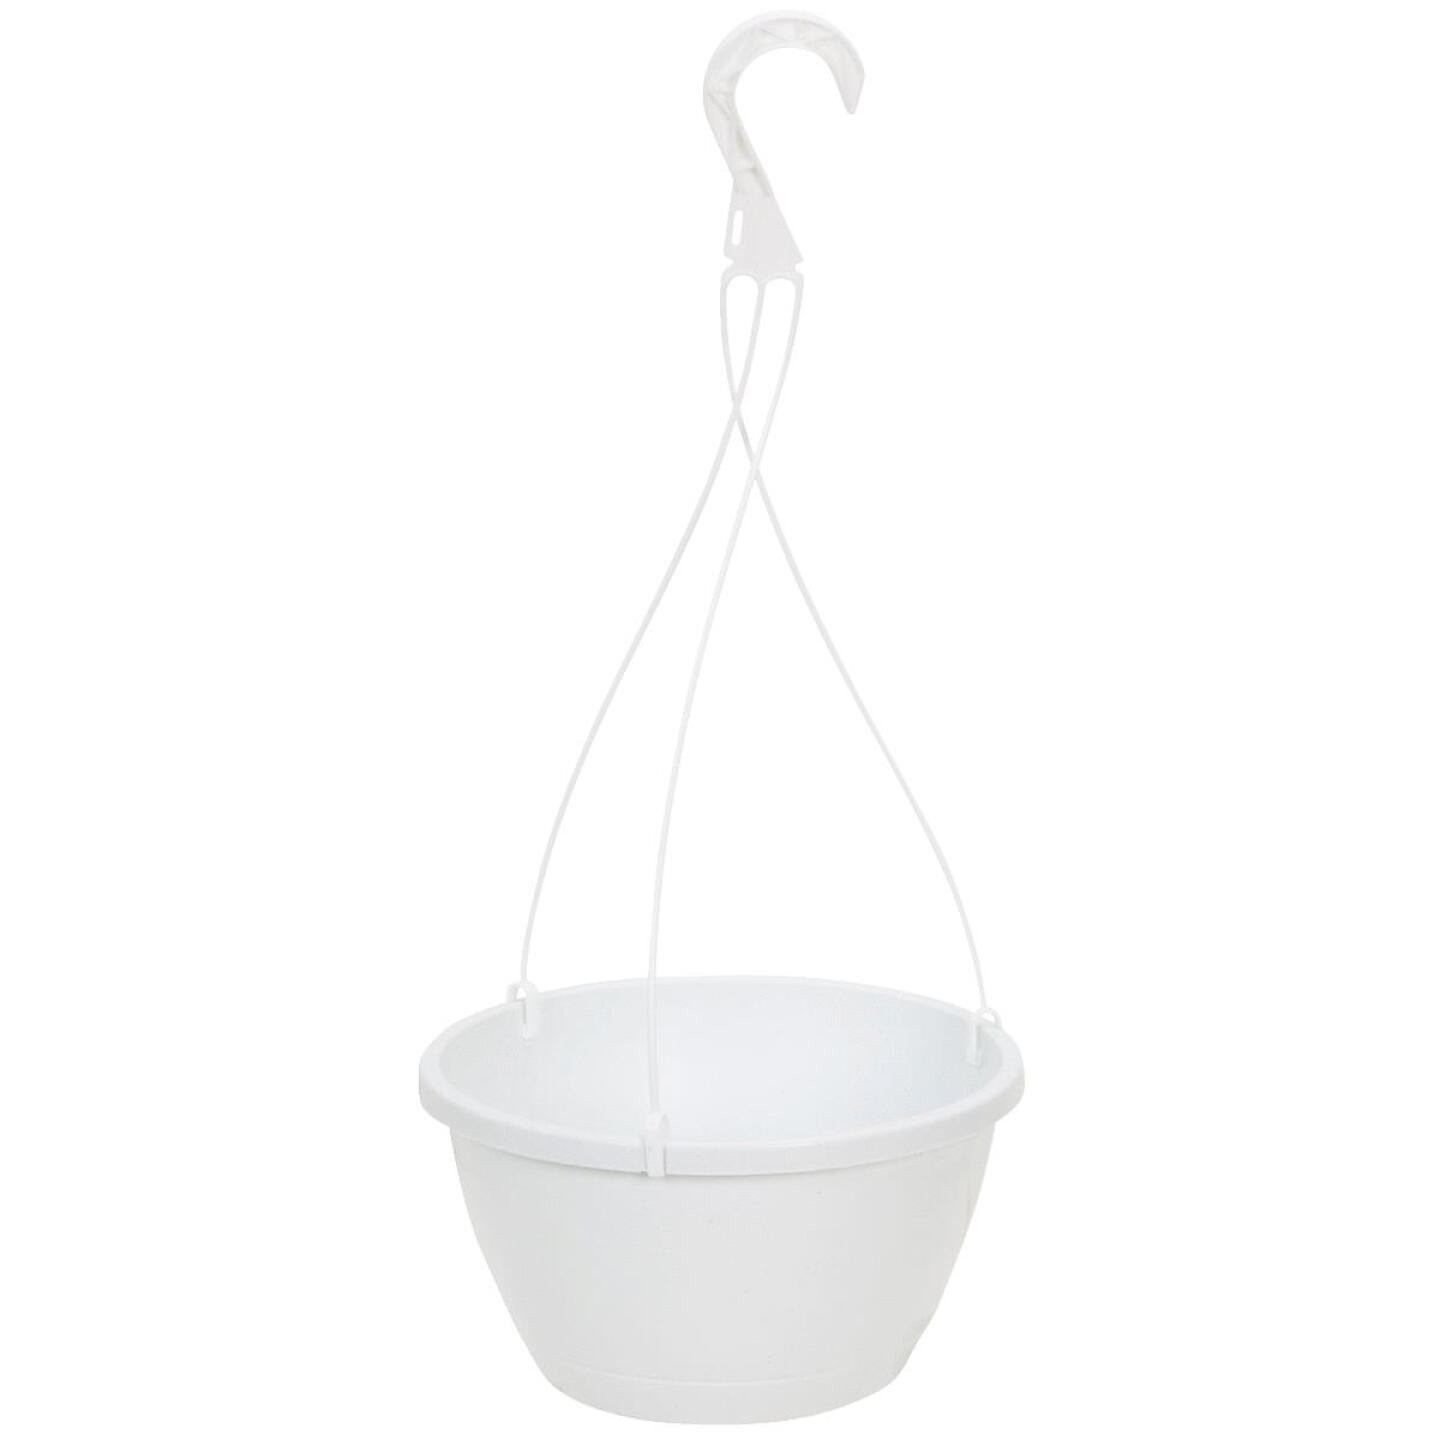 Myers 10 In. Polypropylene White Hanging Plant Basket Image 1